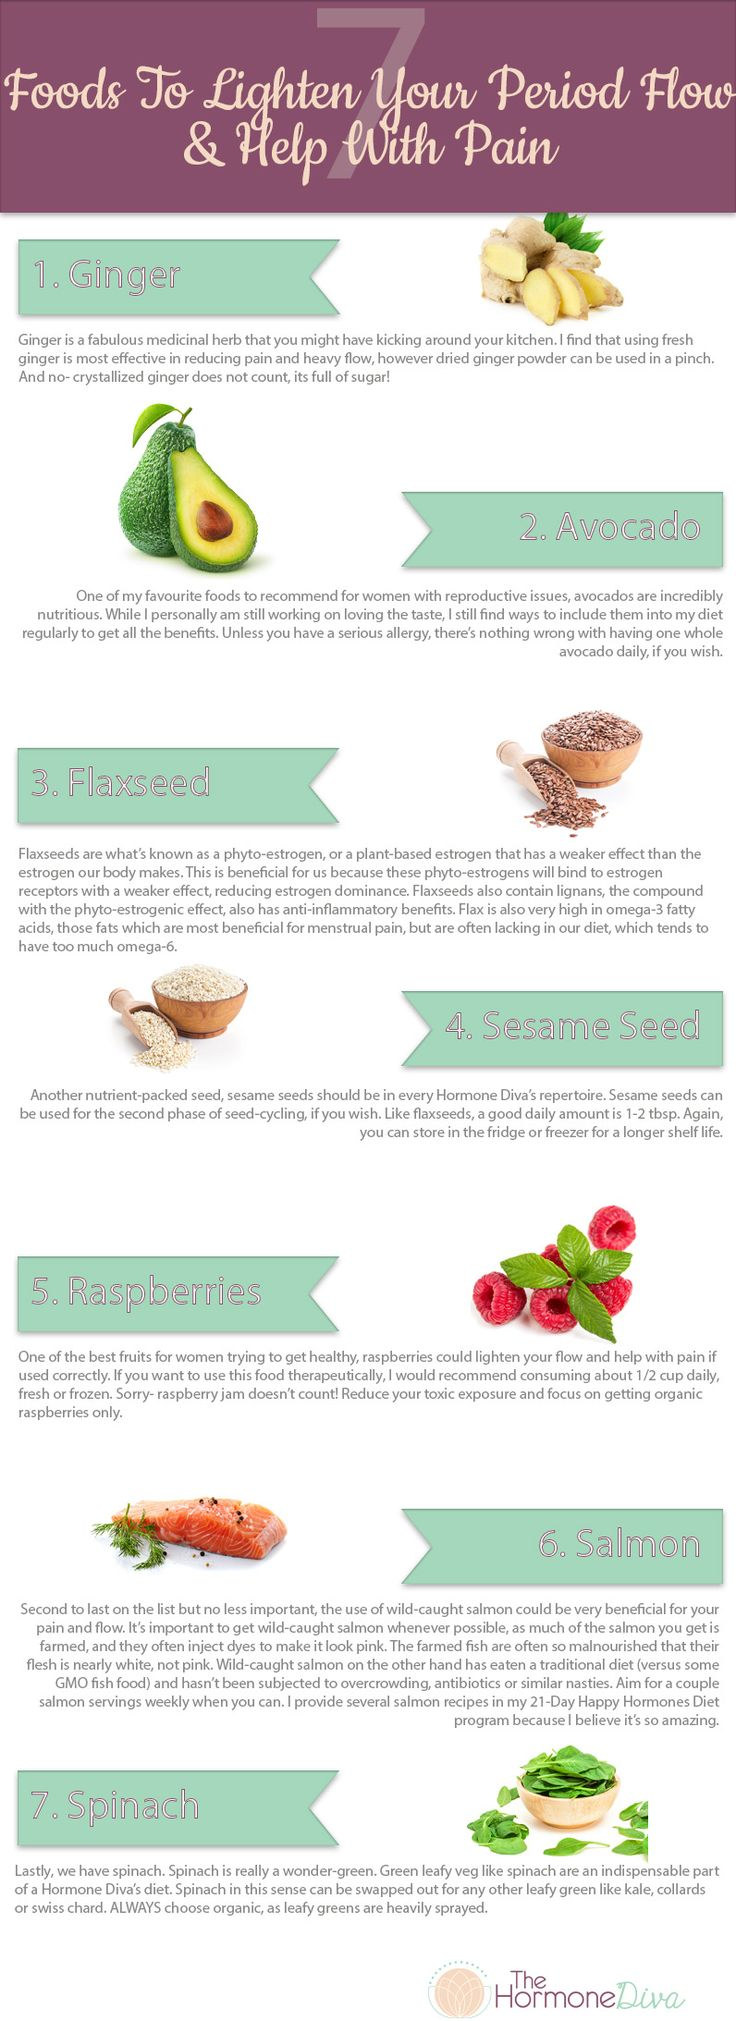 Suffering From Heavy & Painful Periods? 7 Foods To Lighten Your Flow & Help With Pain |The Hormone Diva|